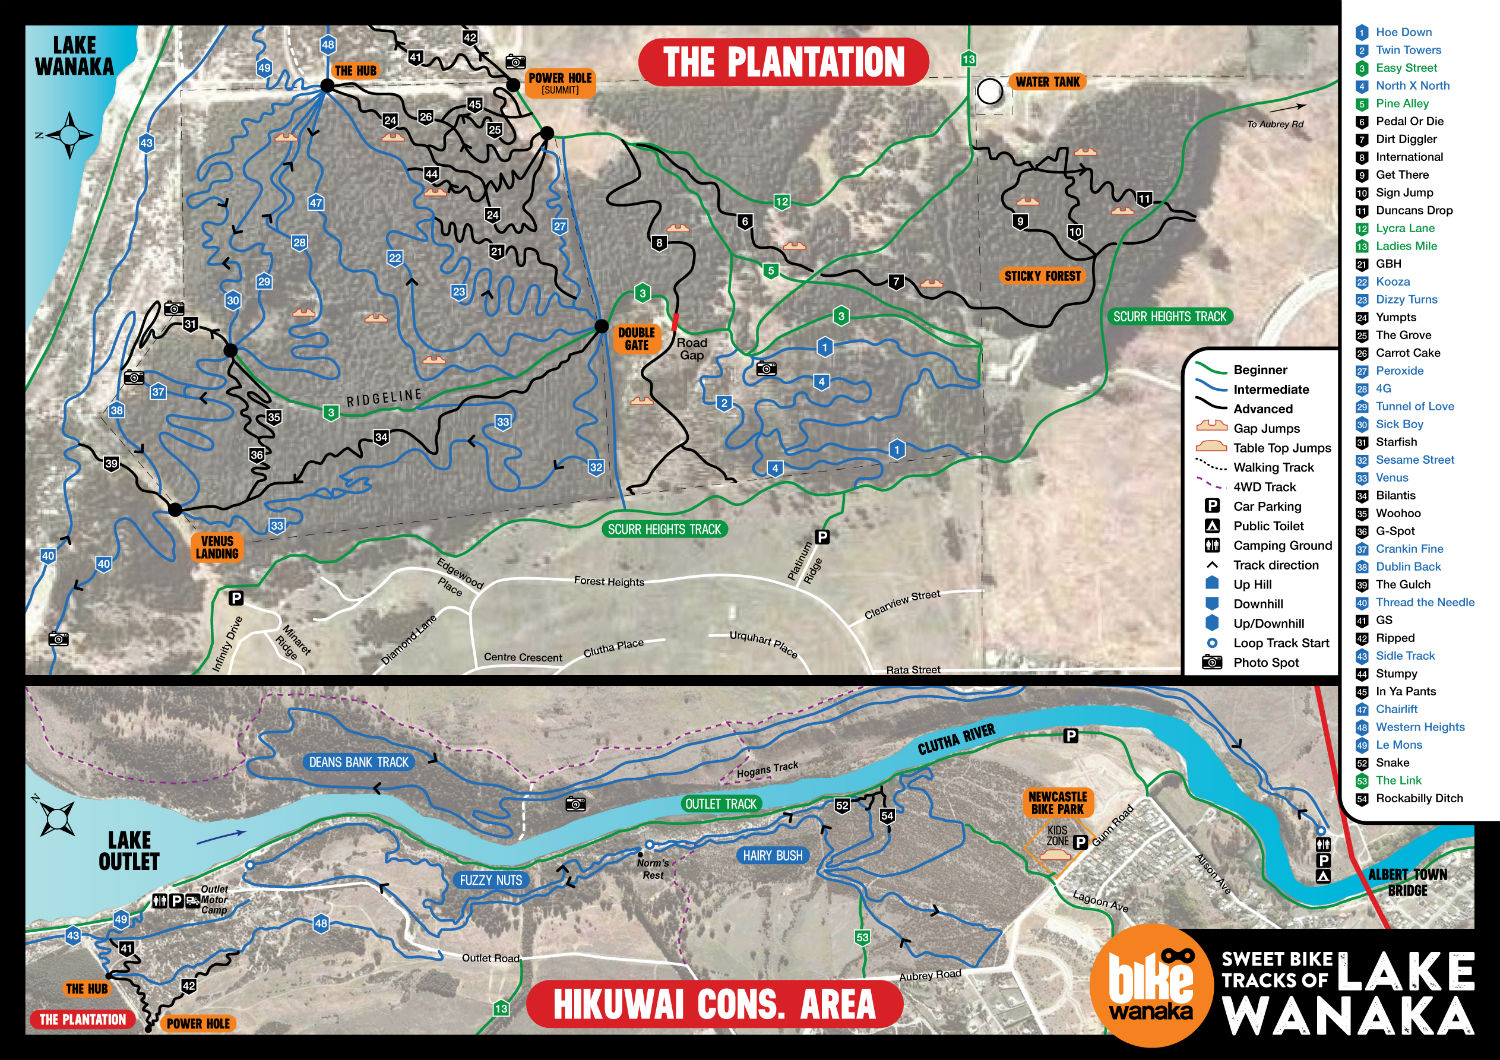 bike wanaka sticky forest mountain bike trail map